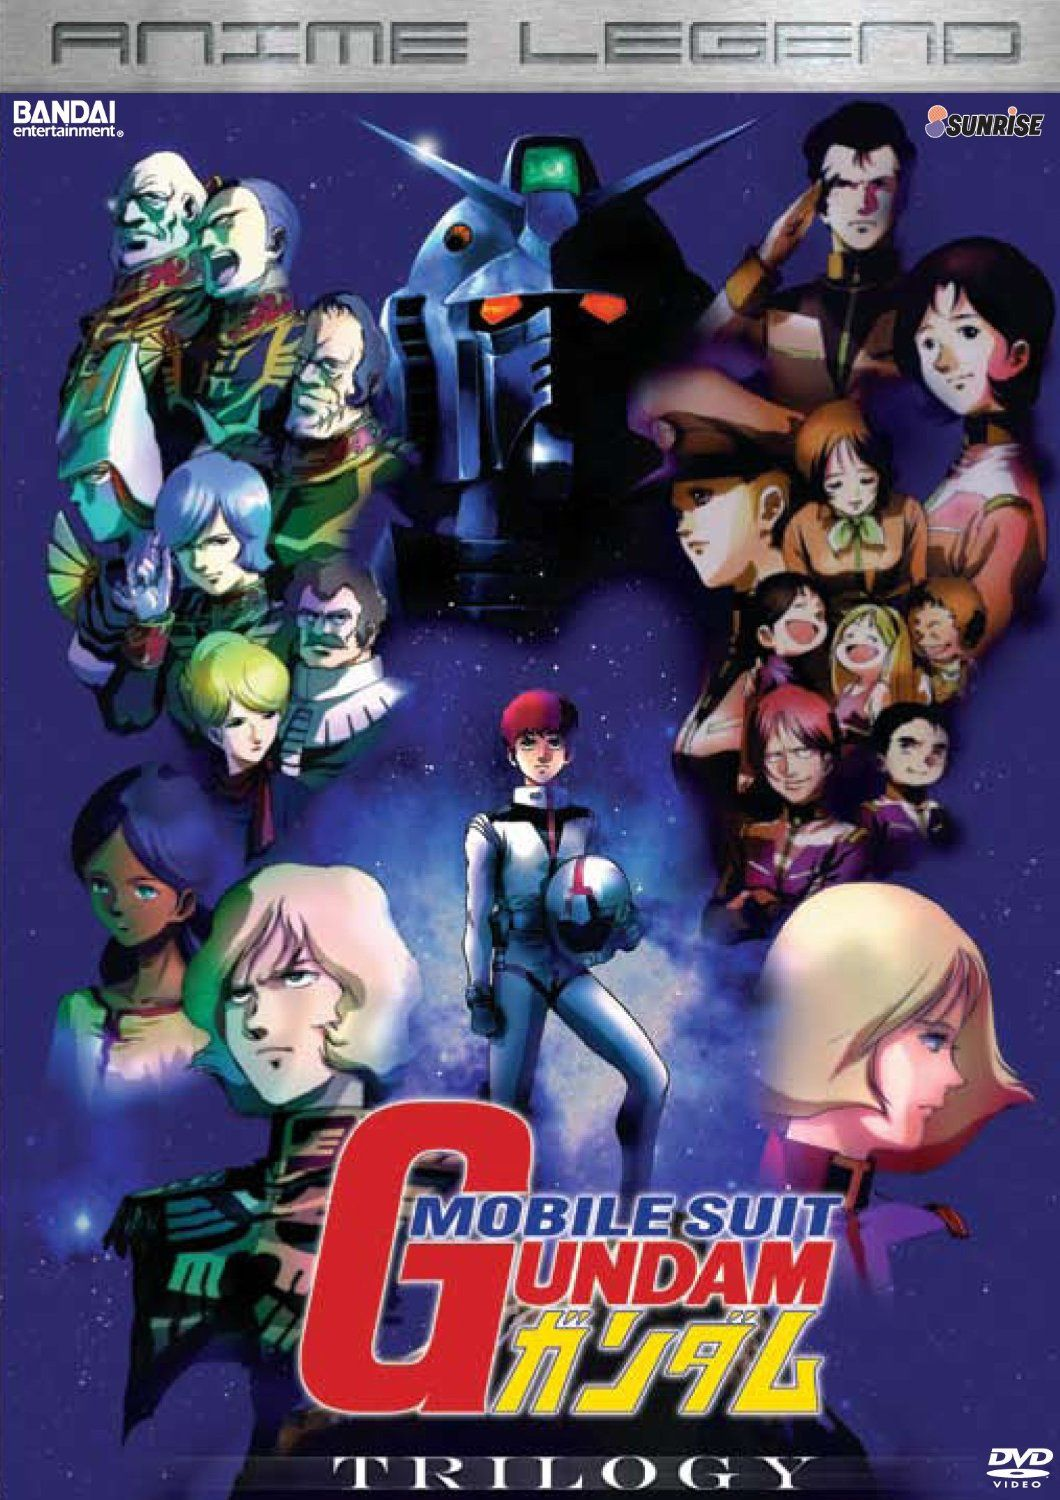 Pin by Anh Lột on gundam poster (wall scroll) Anime